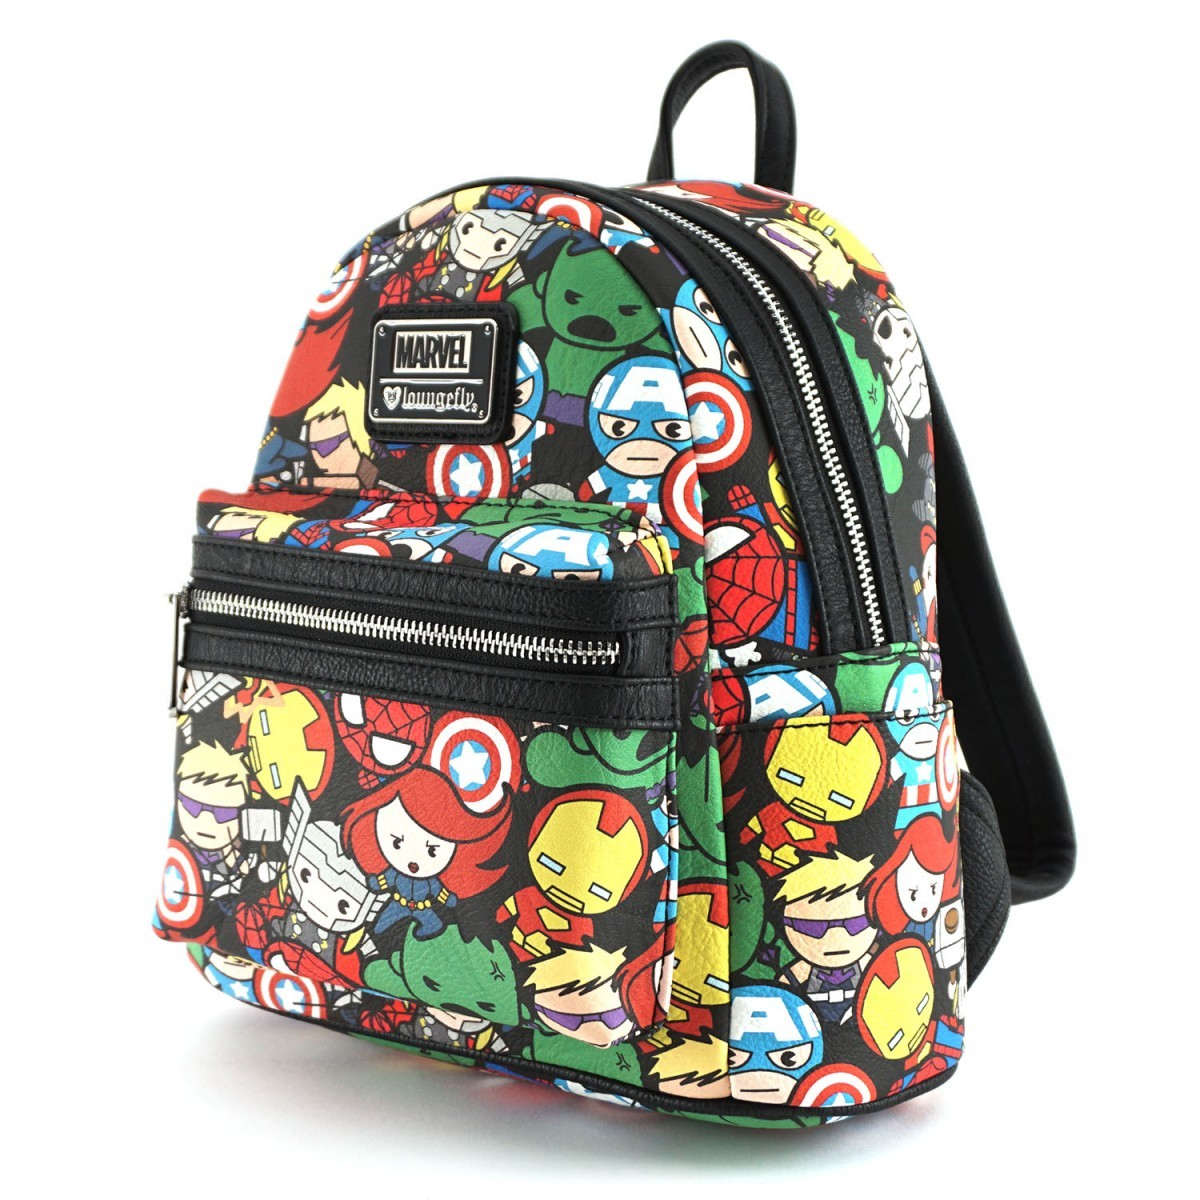 44aa0da322 ... Loungefly Marvel Avengers Kawaii Print Mini Backpack image